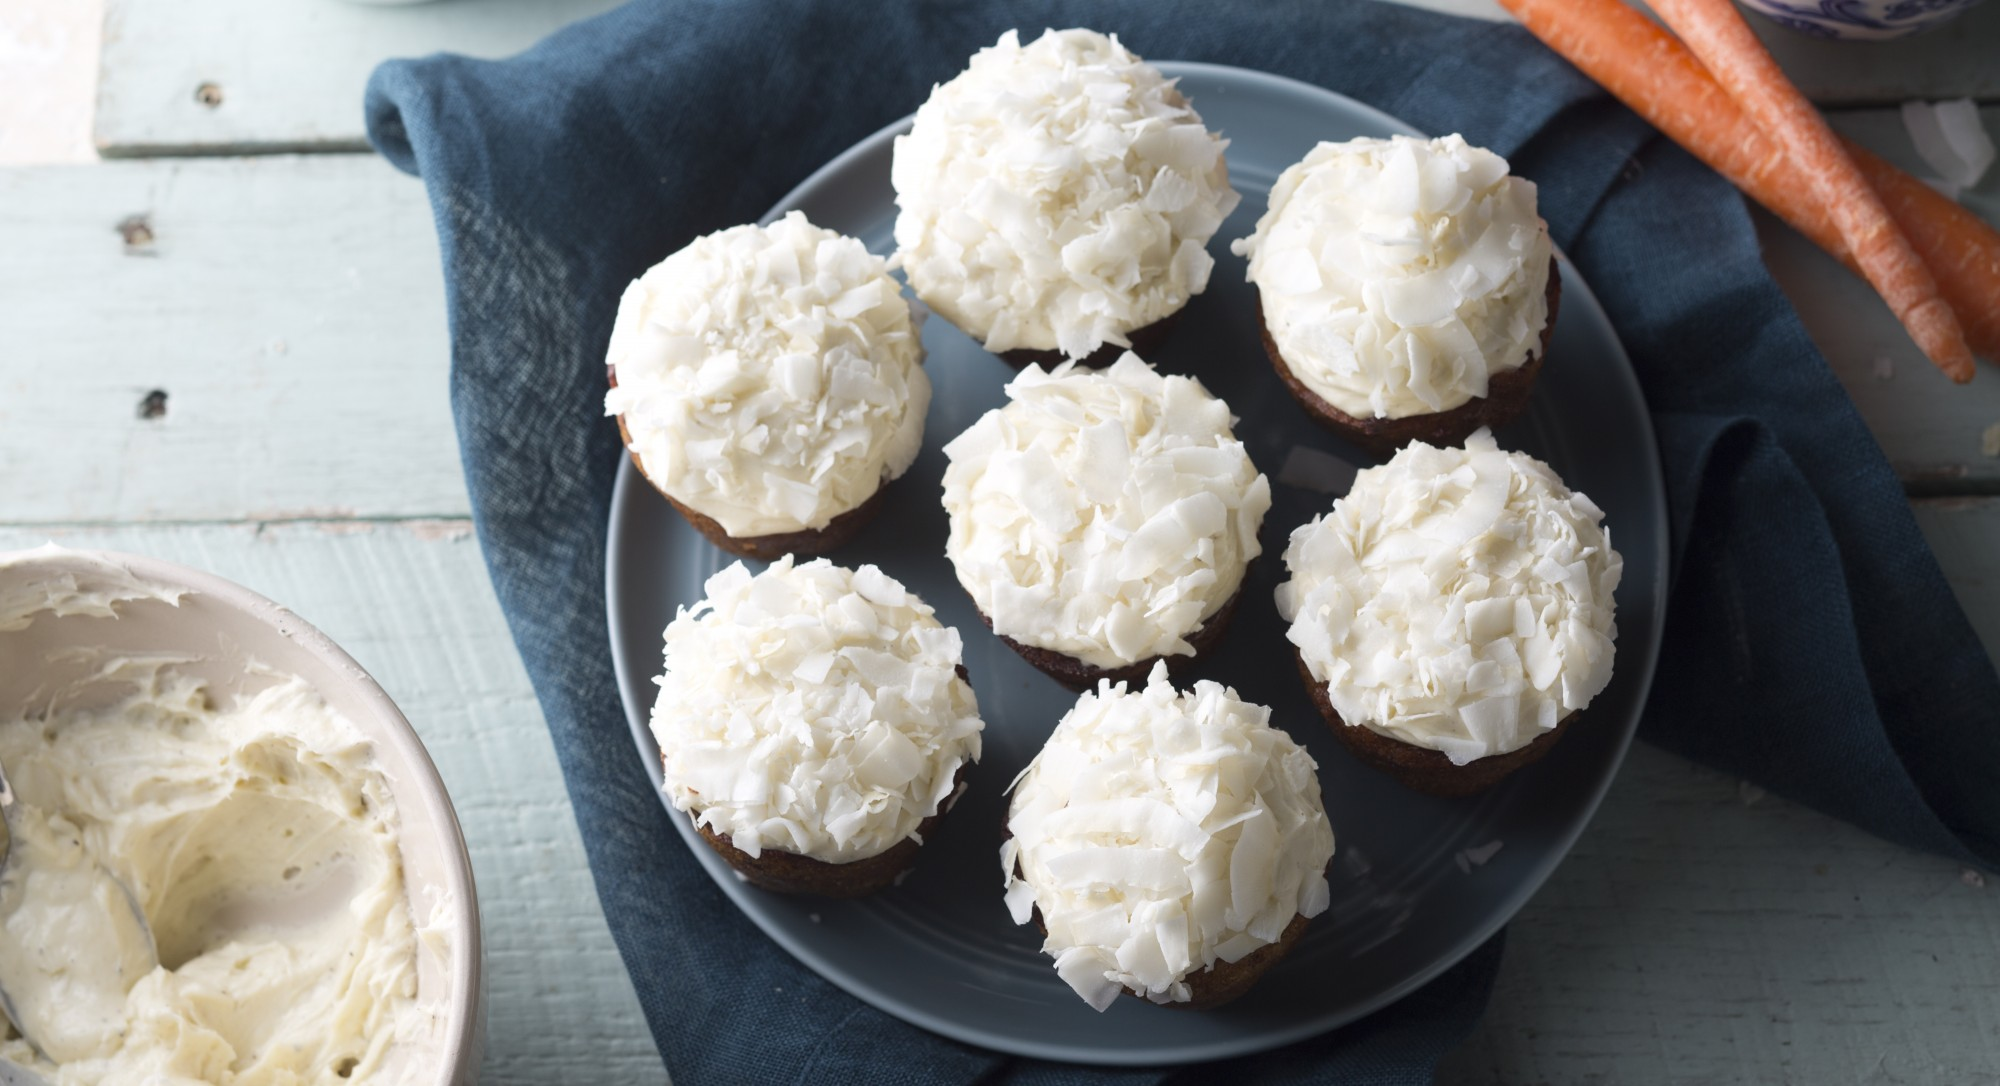 Carrot Cupcakes With Cream Cheese Frosting | The Huffington Post